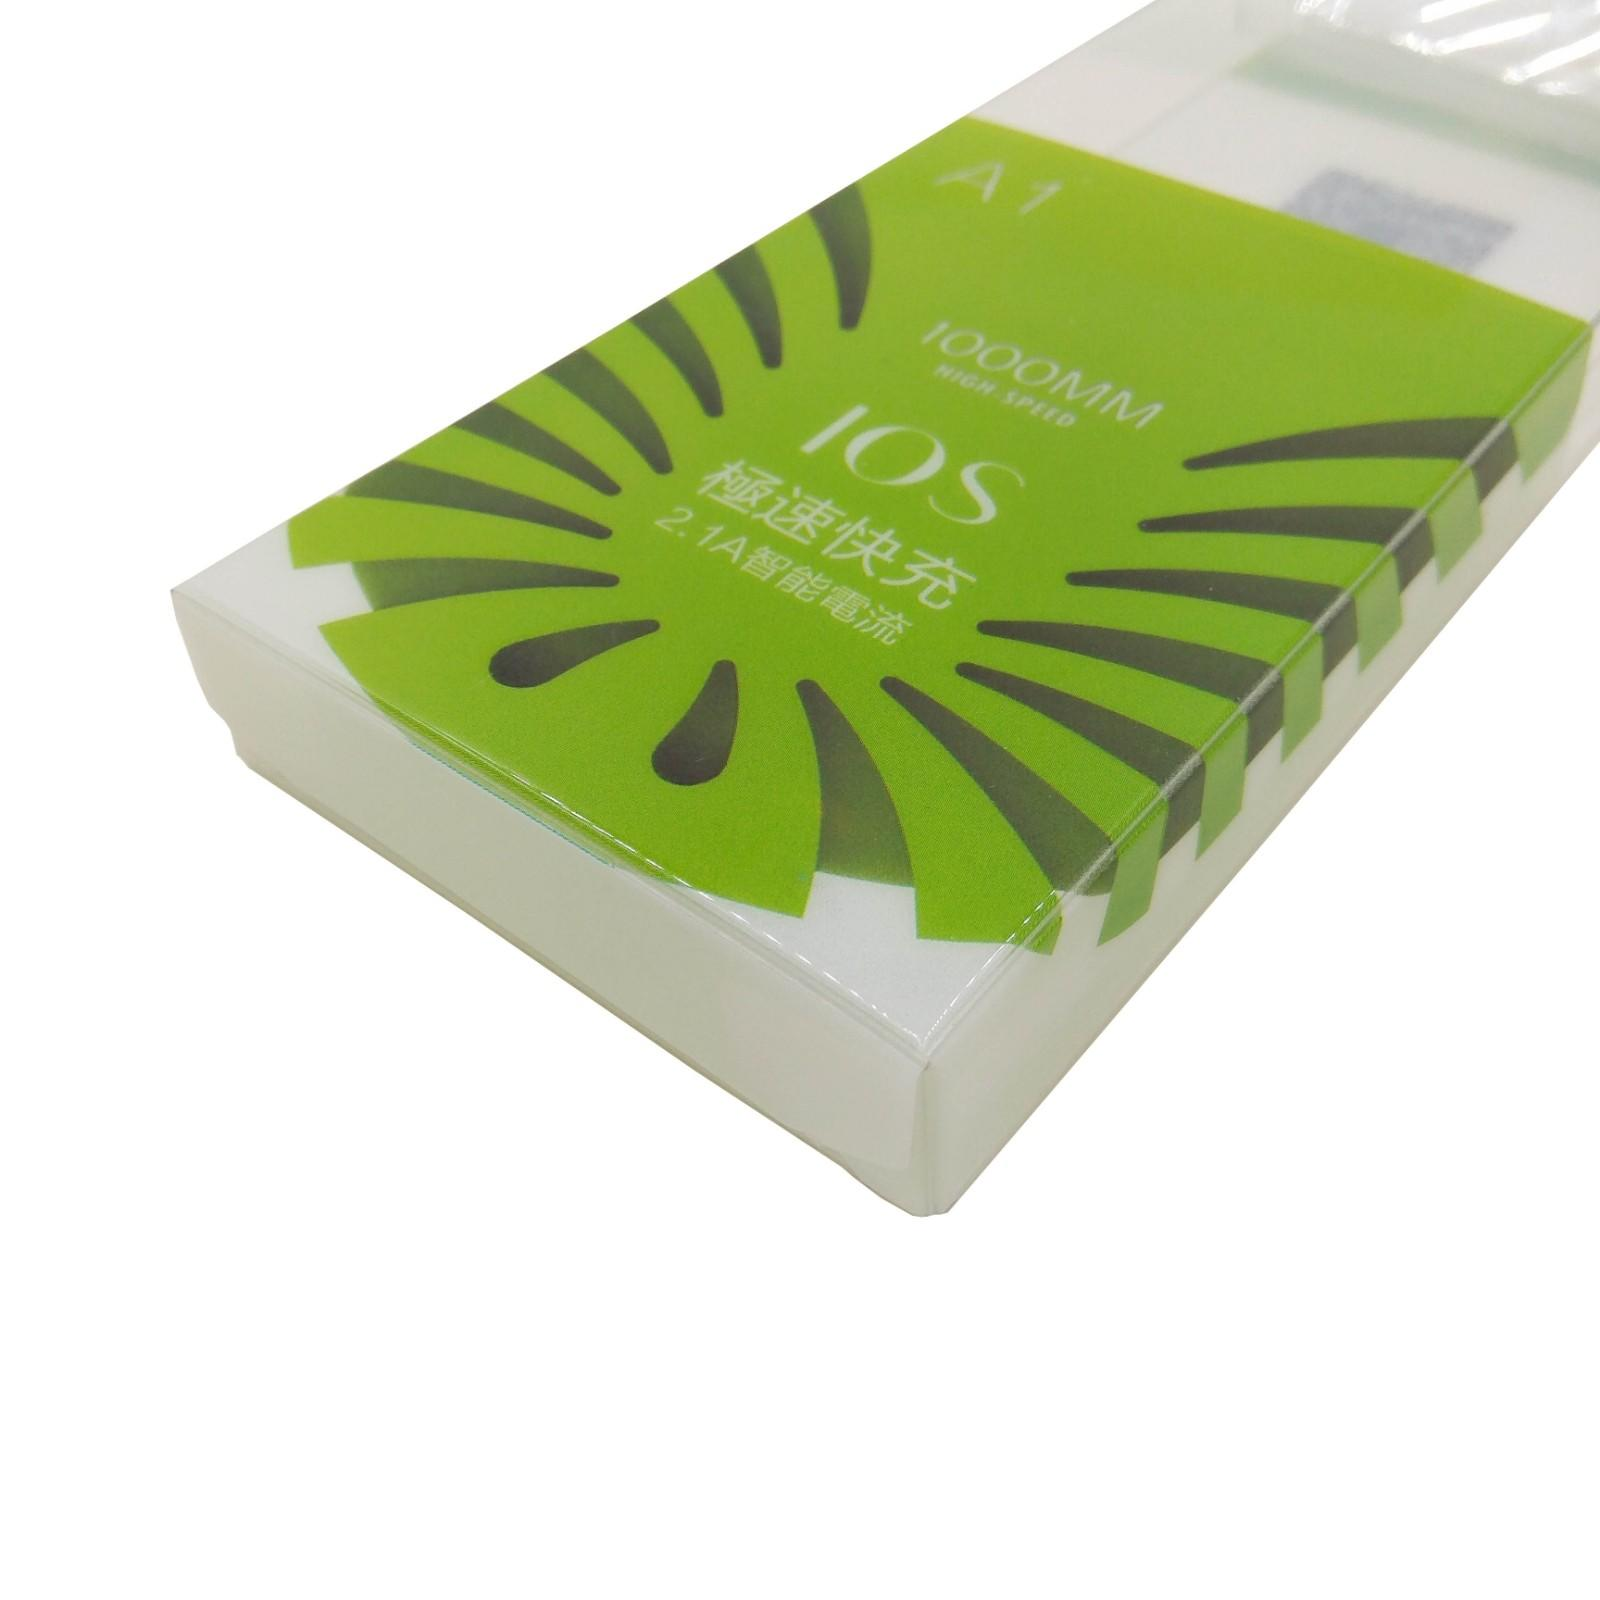 Yijianxing Plastic Products theme plastic box packaging at discount for candy